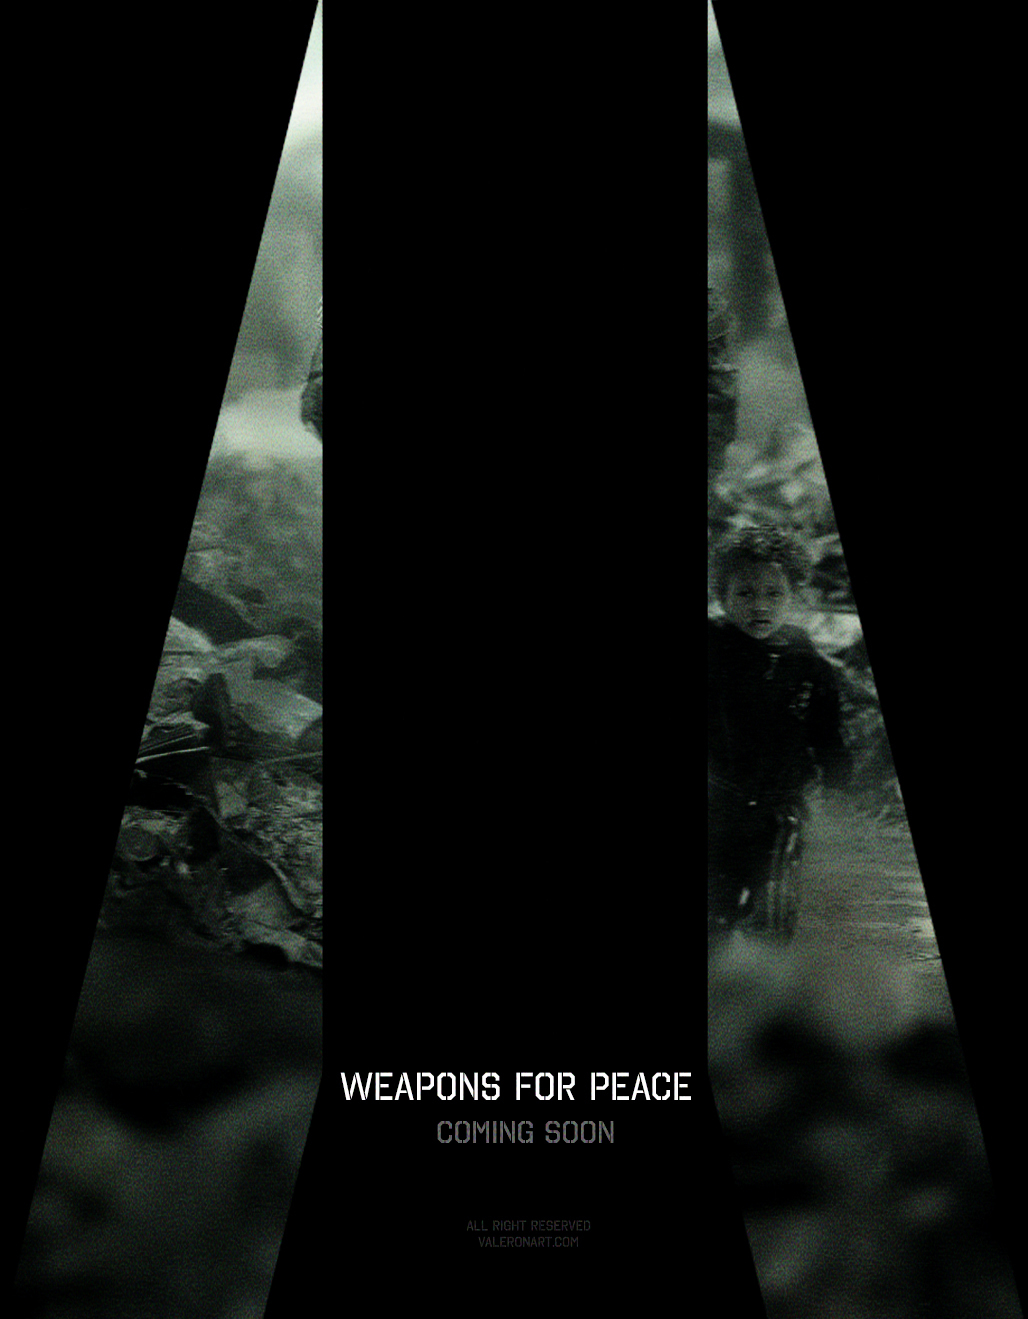 WEAPONS FOR PEACE - NEW OFFICIAL POSTER